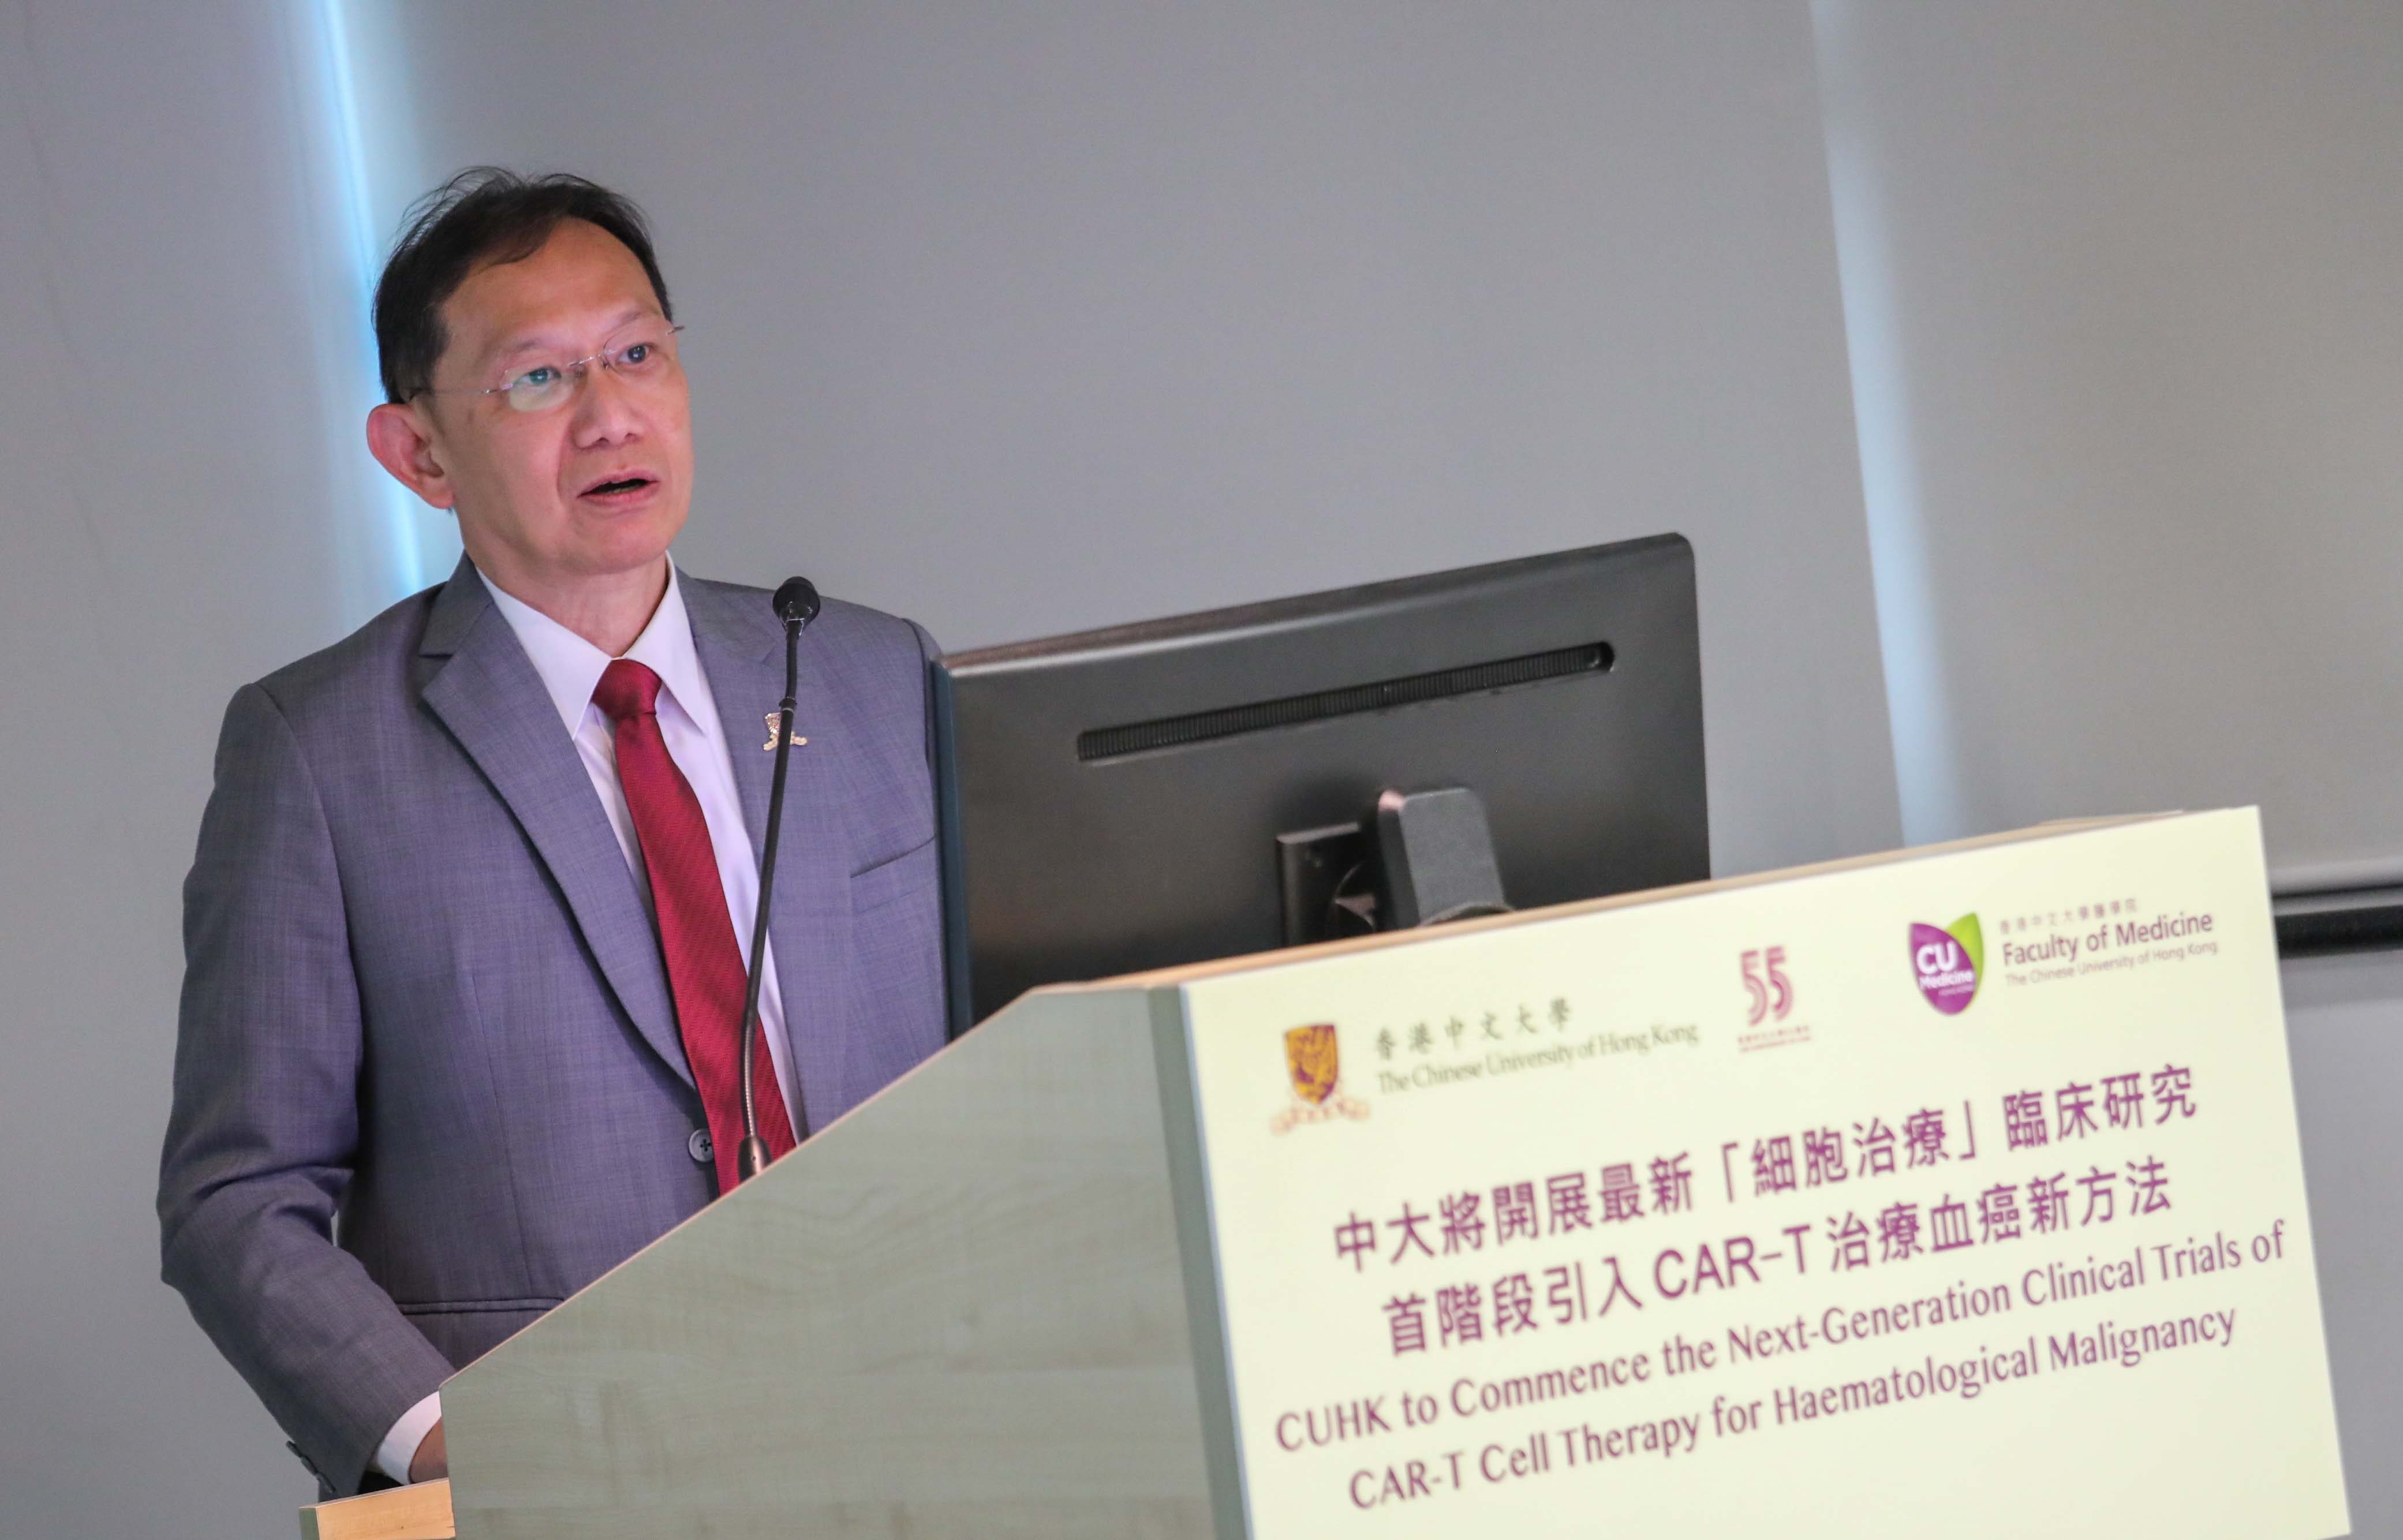 Dr. Daniel LEE, Associate Vice-President (Innovation and Enterprise) of CUHK, states that construction of the qualified laboratory for CAR-T cell therapy is expected to be completed in 2020. Clinical trials will be launched once the GMP licence is obtained.